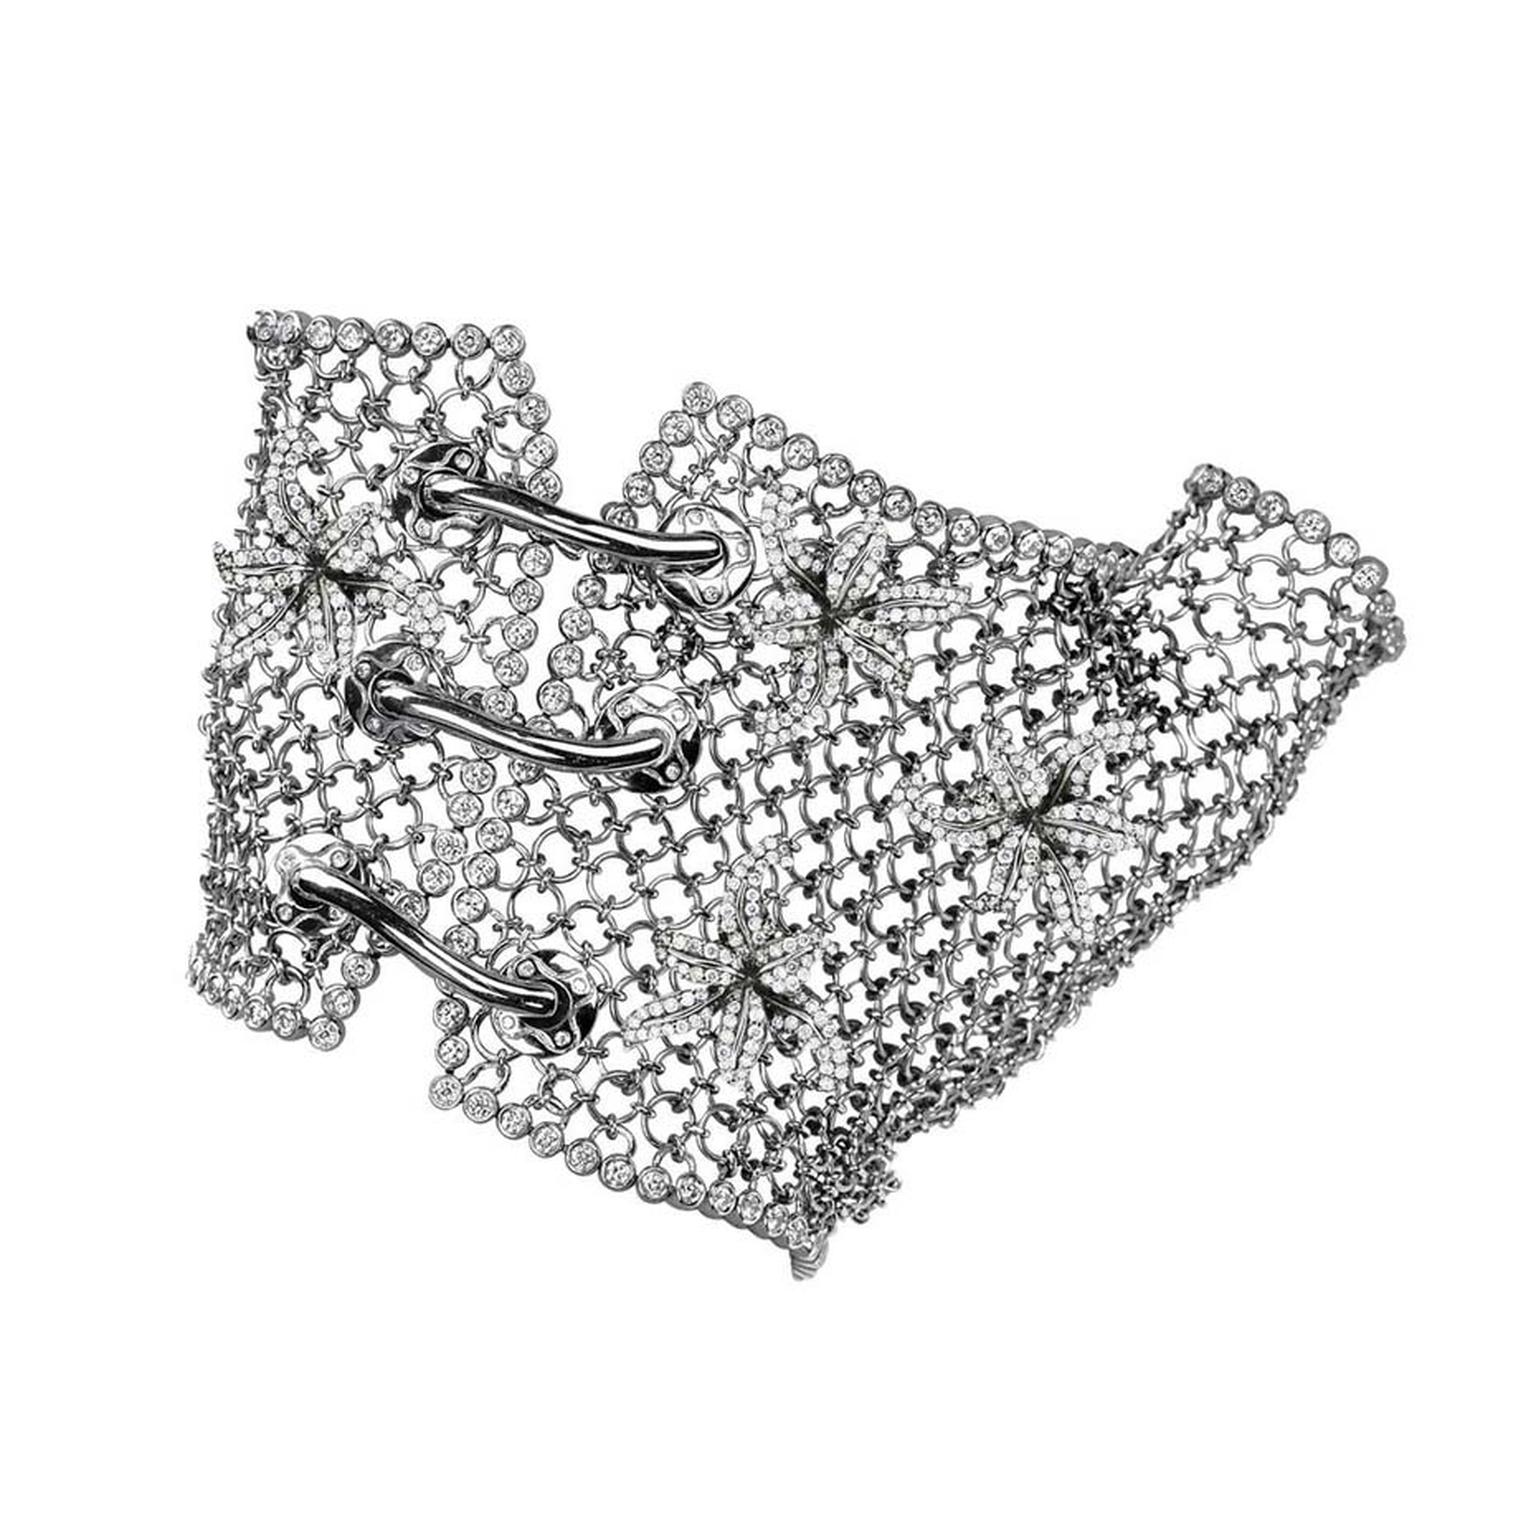 Colette Entwined In You white gold glove with white diamonds ($48,000).